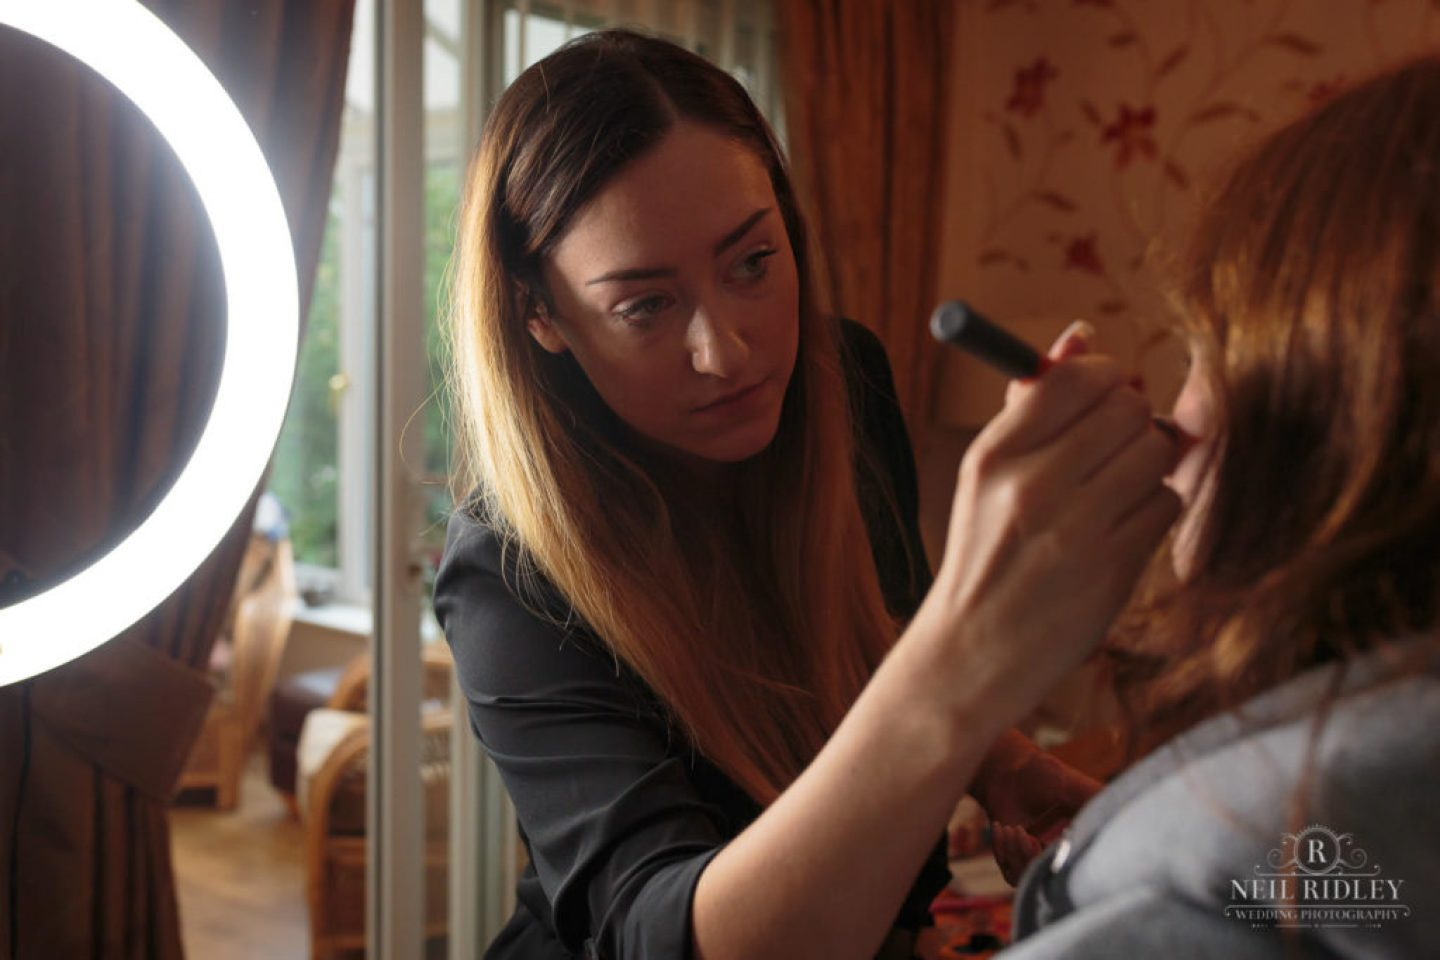 Make up artist applying makeup with a brush during Bridal Prep